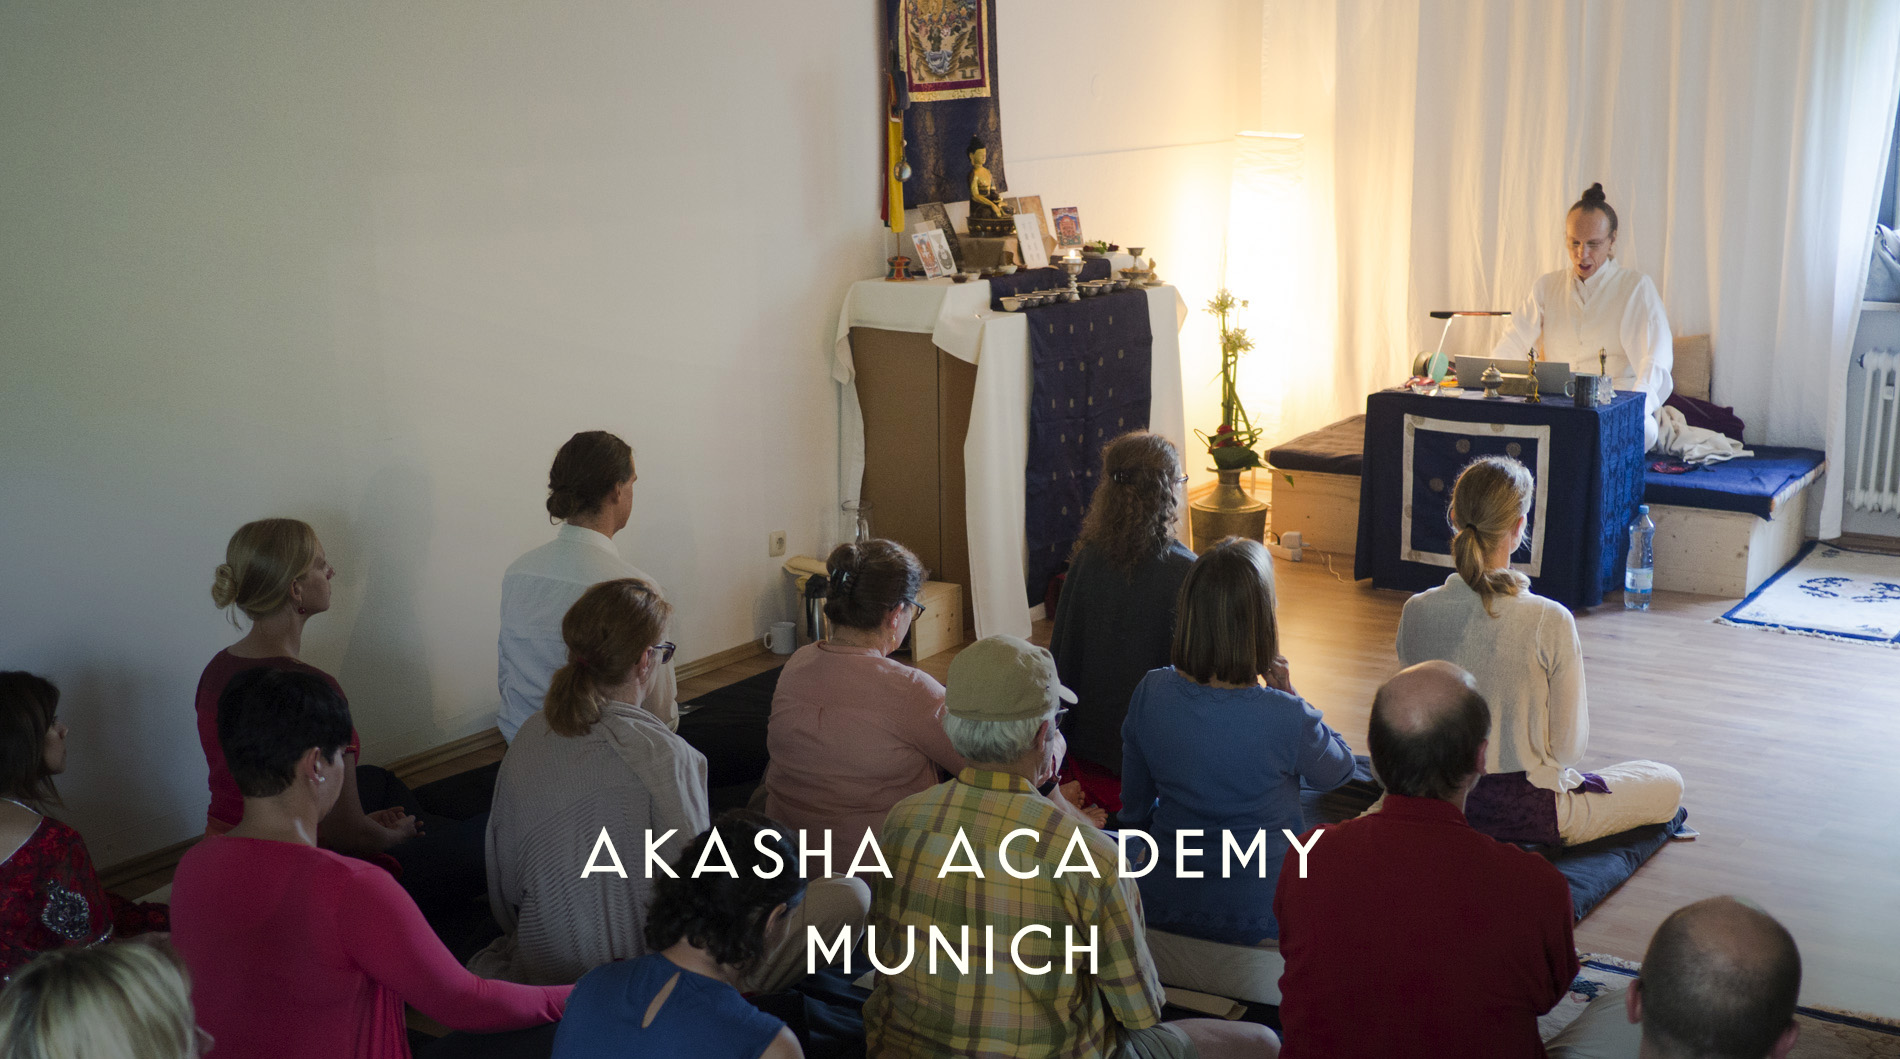 Akasha Academy Munich, Germany